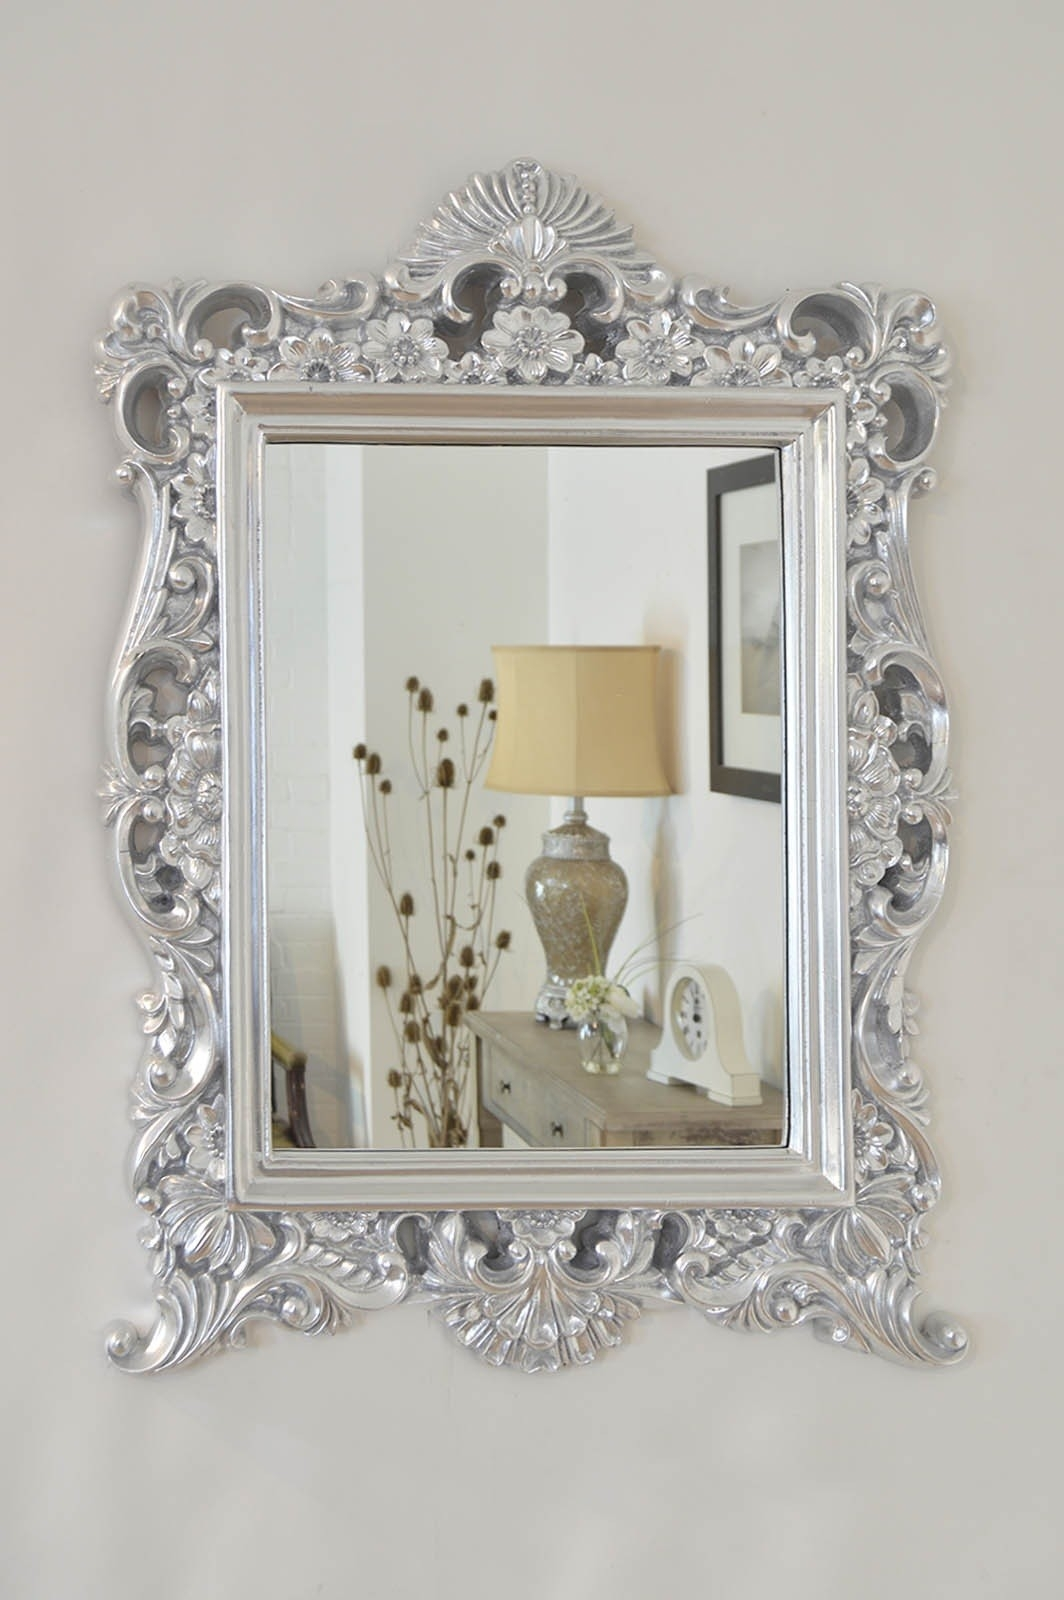 Large Silver Baroque Style Portrait Ornate Wall Mirror 2ft9 X 2ft1 Intended For Large Ornate Silver Mirror (View 3 of 15)